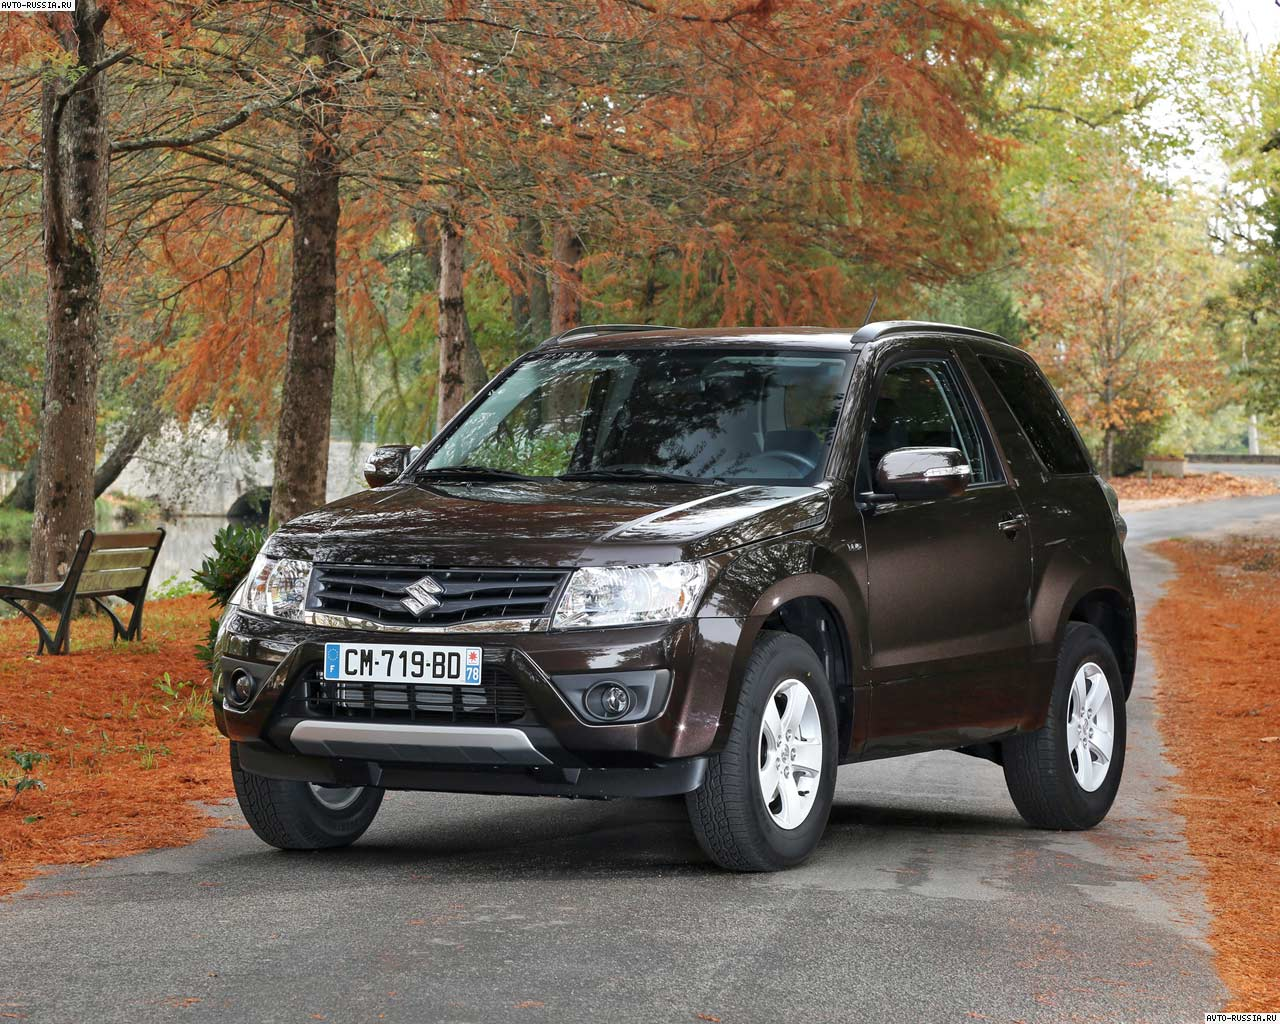 2018 Suzuki Grand Vitara 3 door photo - 4